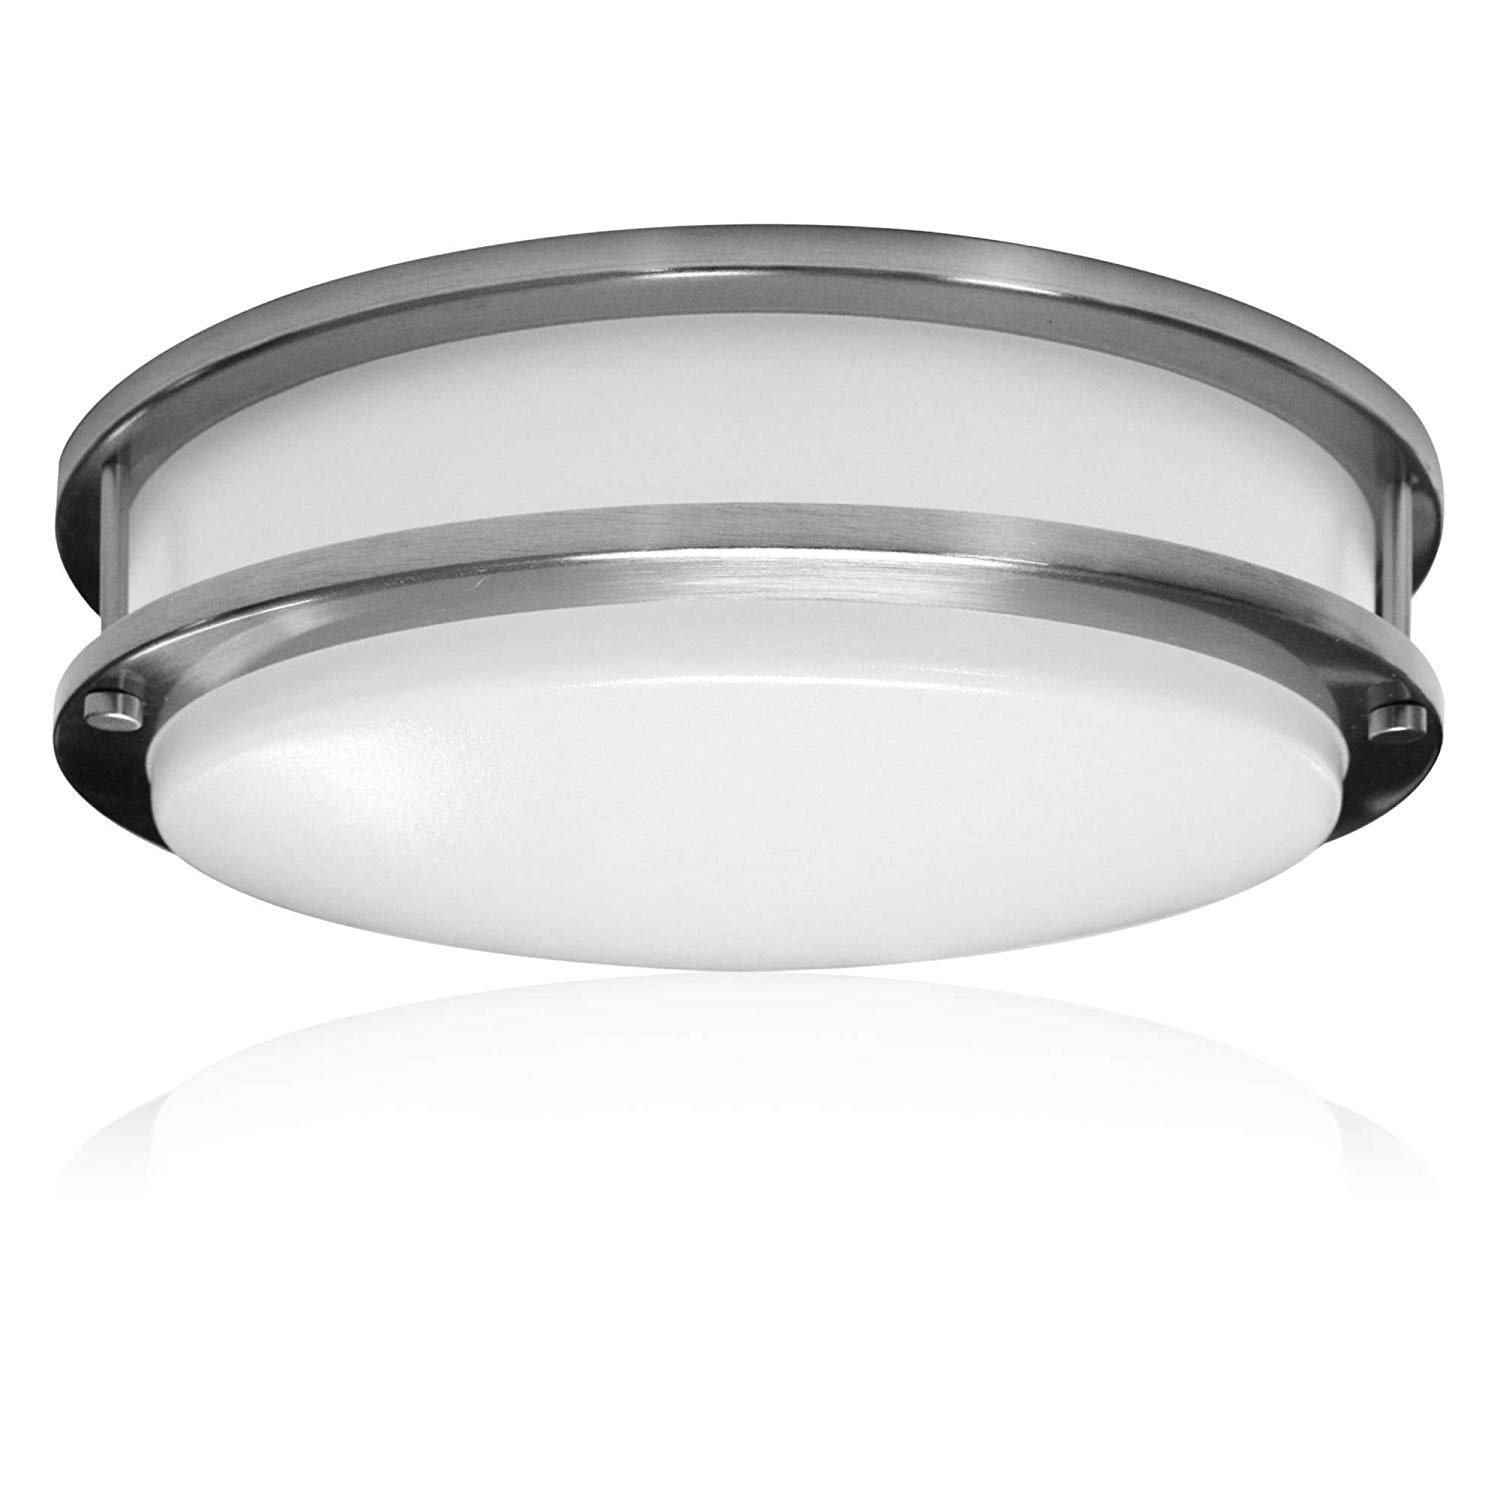 "Outdoor Ceiling Light: Zip-LED 16"" Light Fixture for Ceiling or Wall in Brushed Nickel"